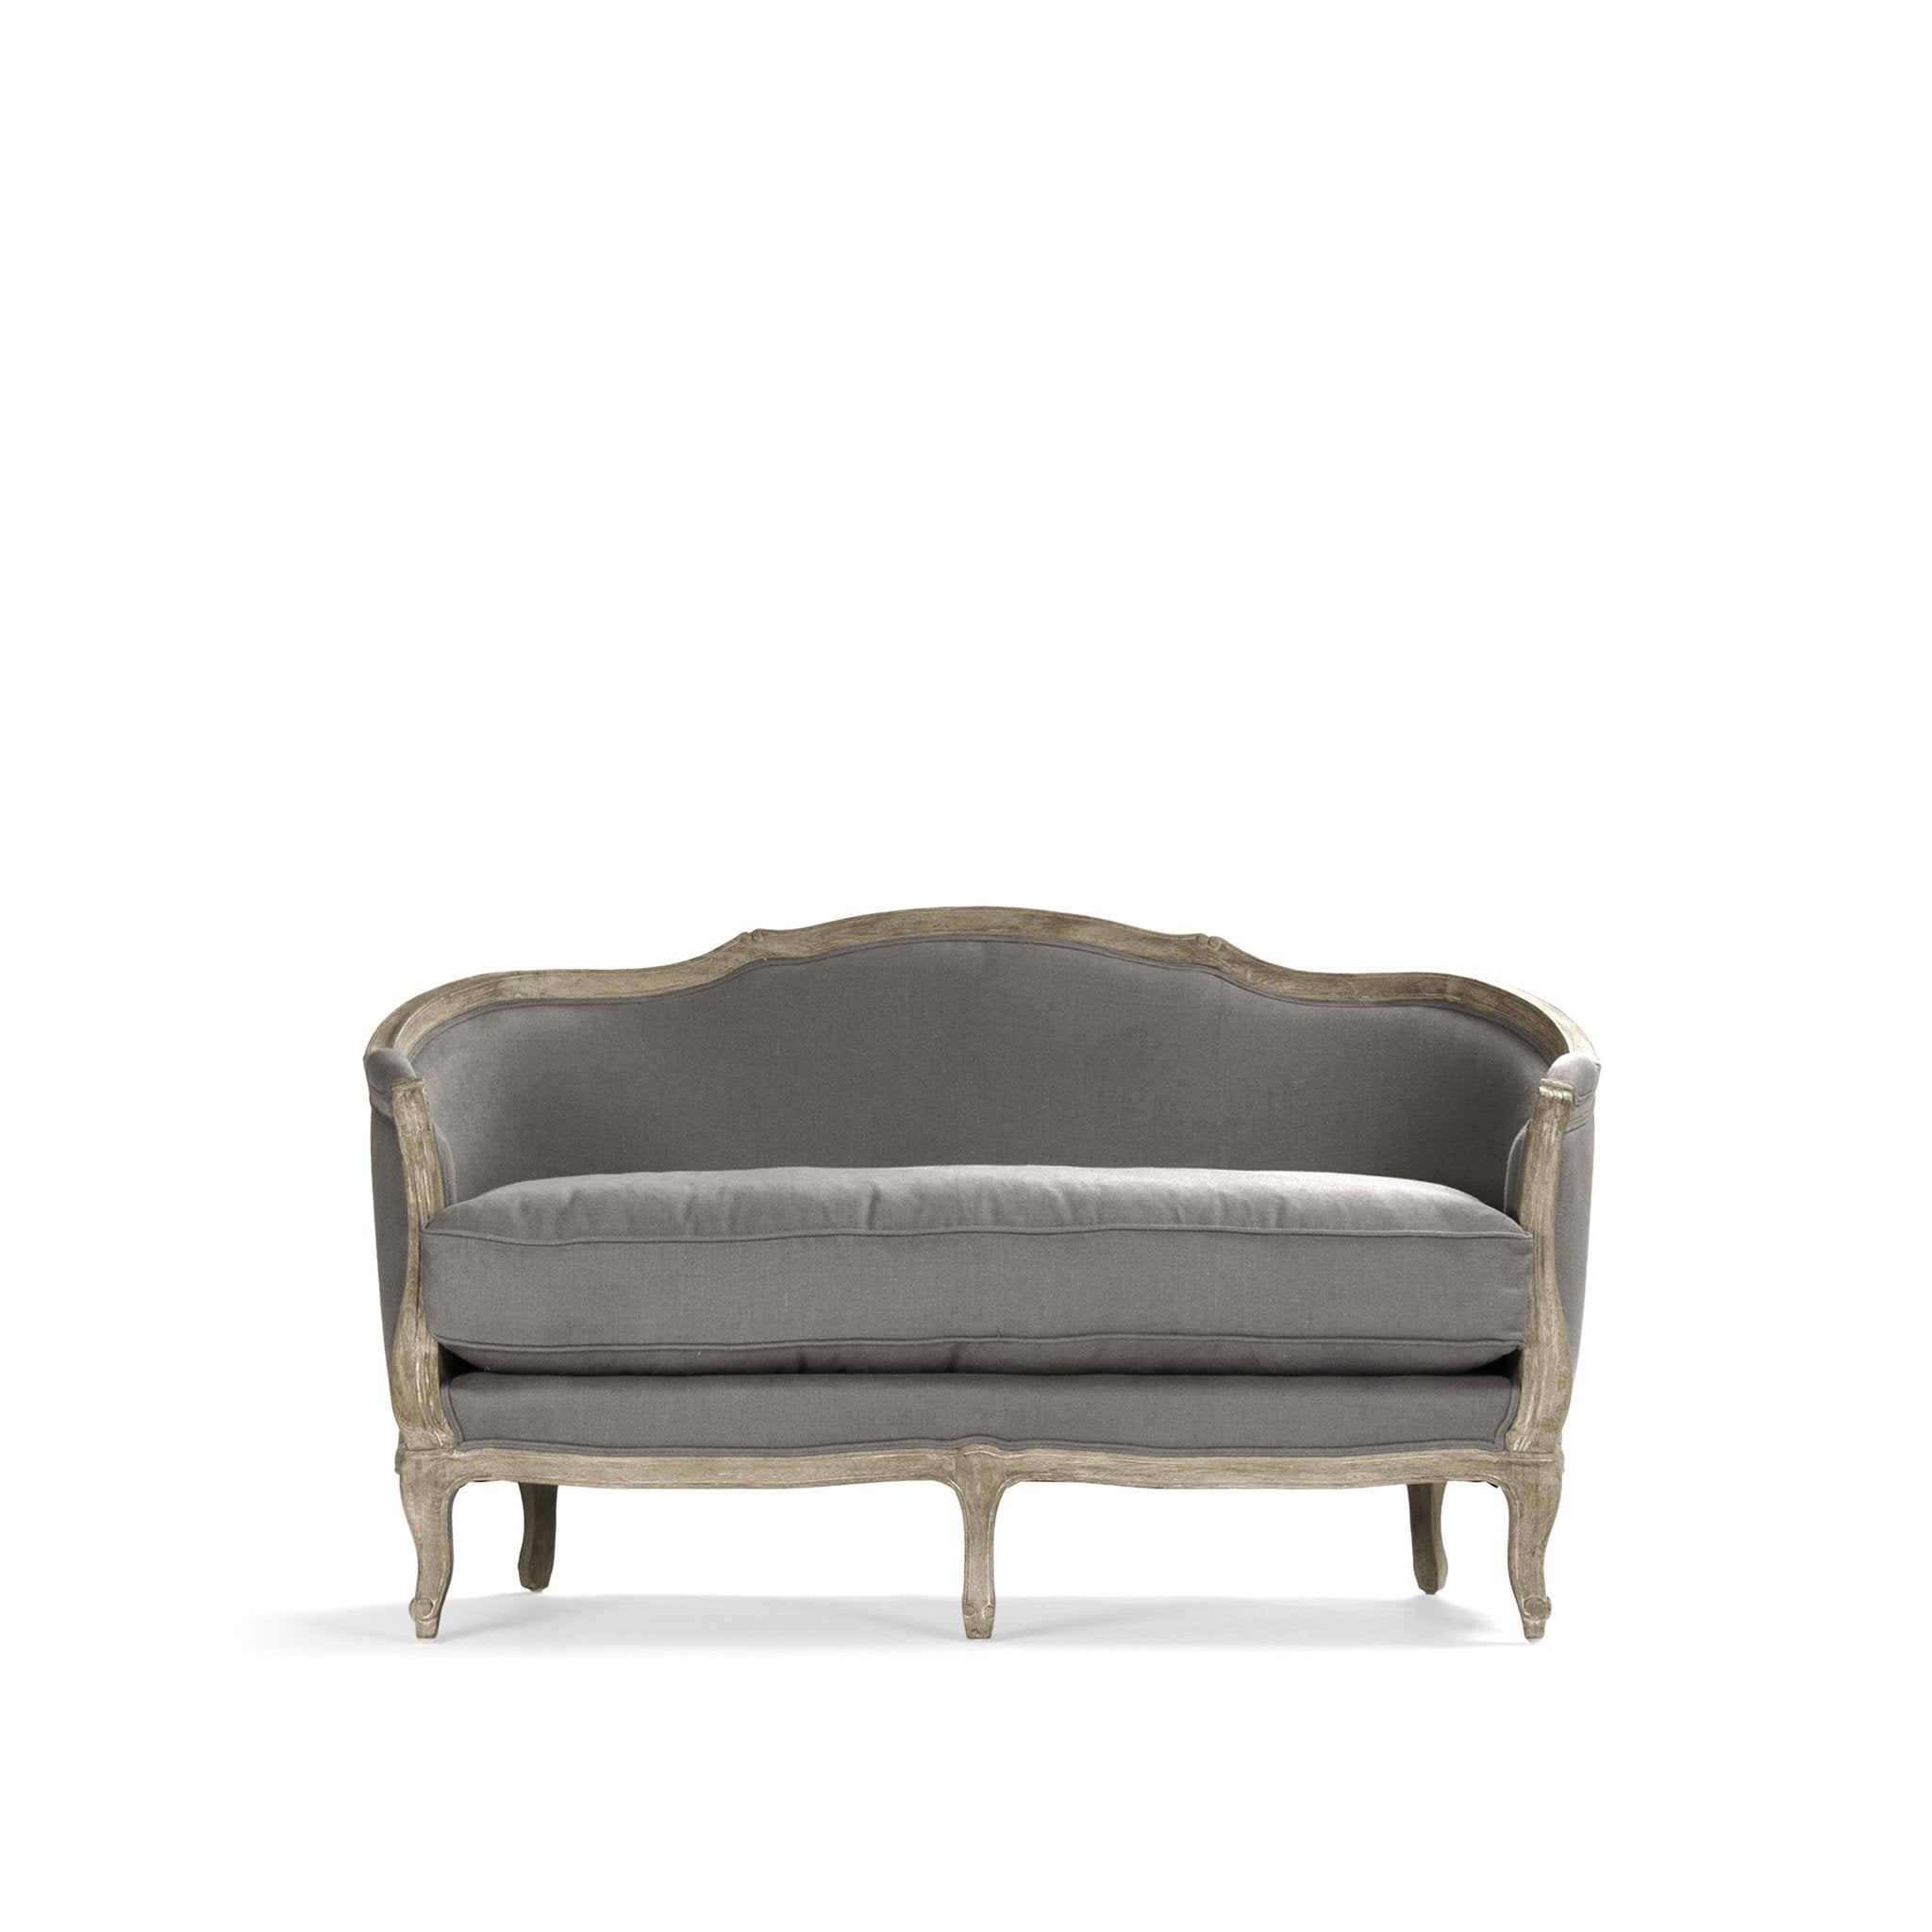 The Countess Settee